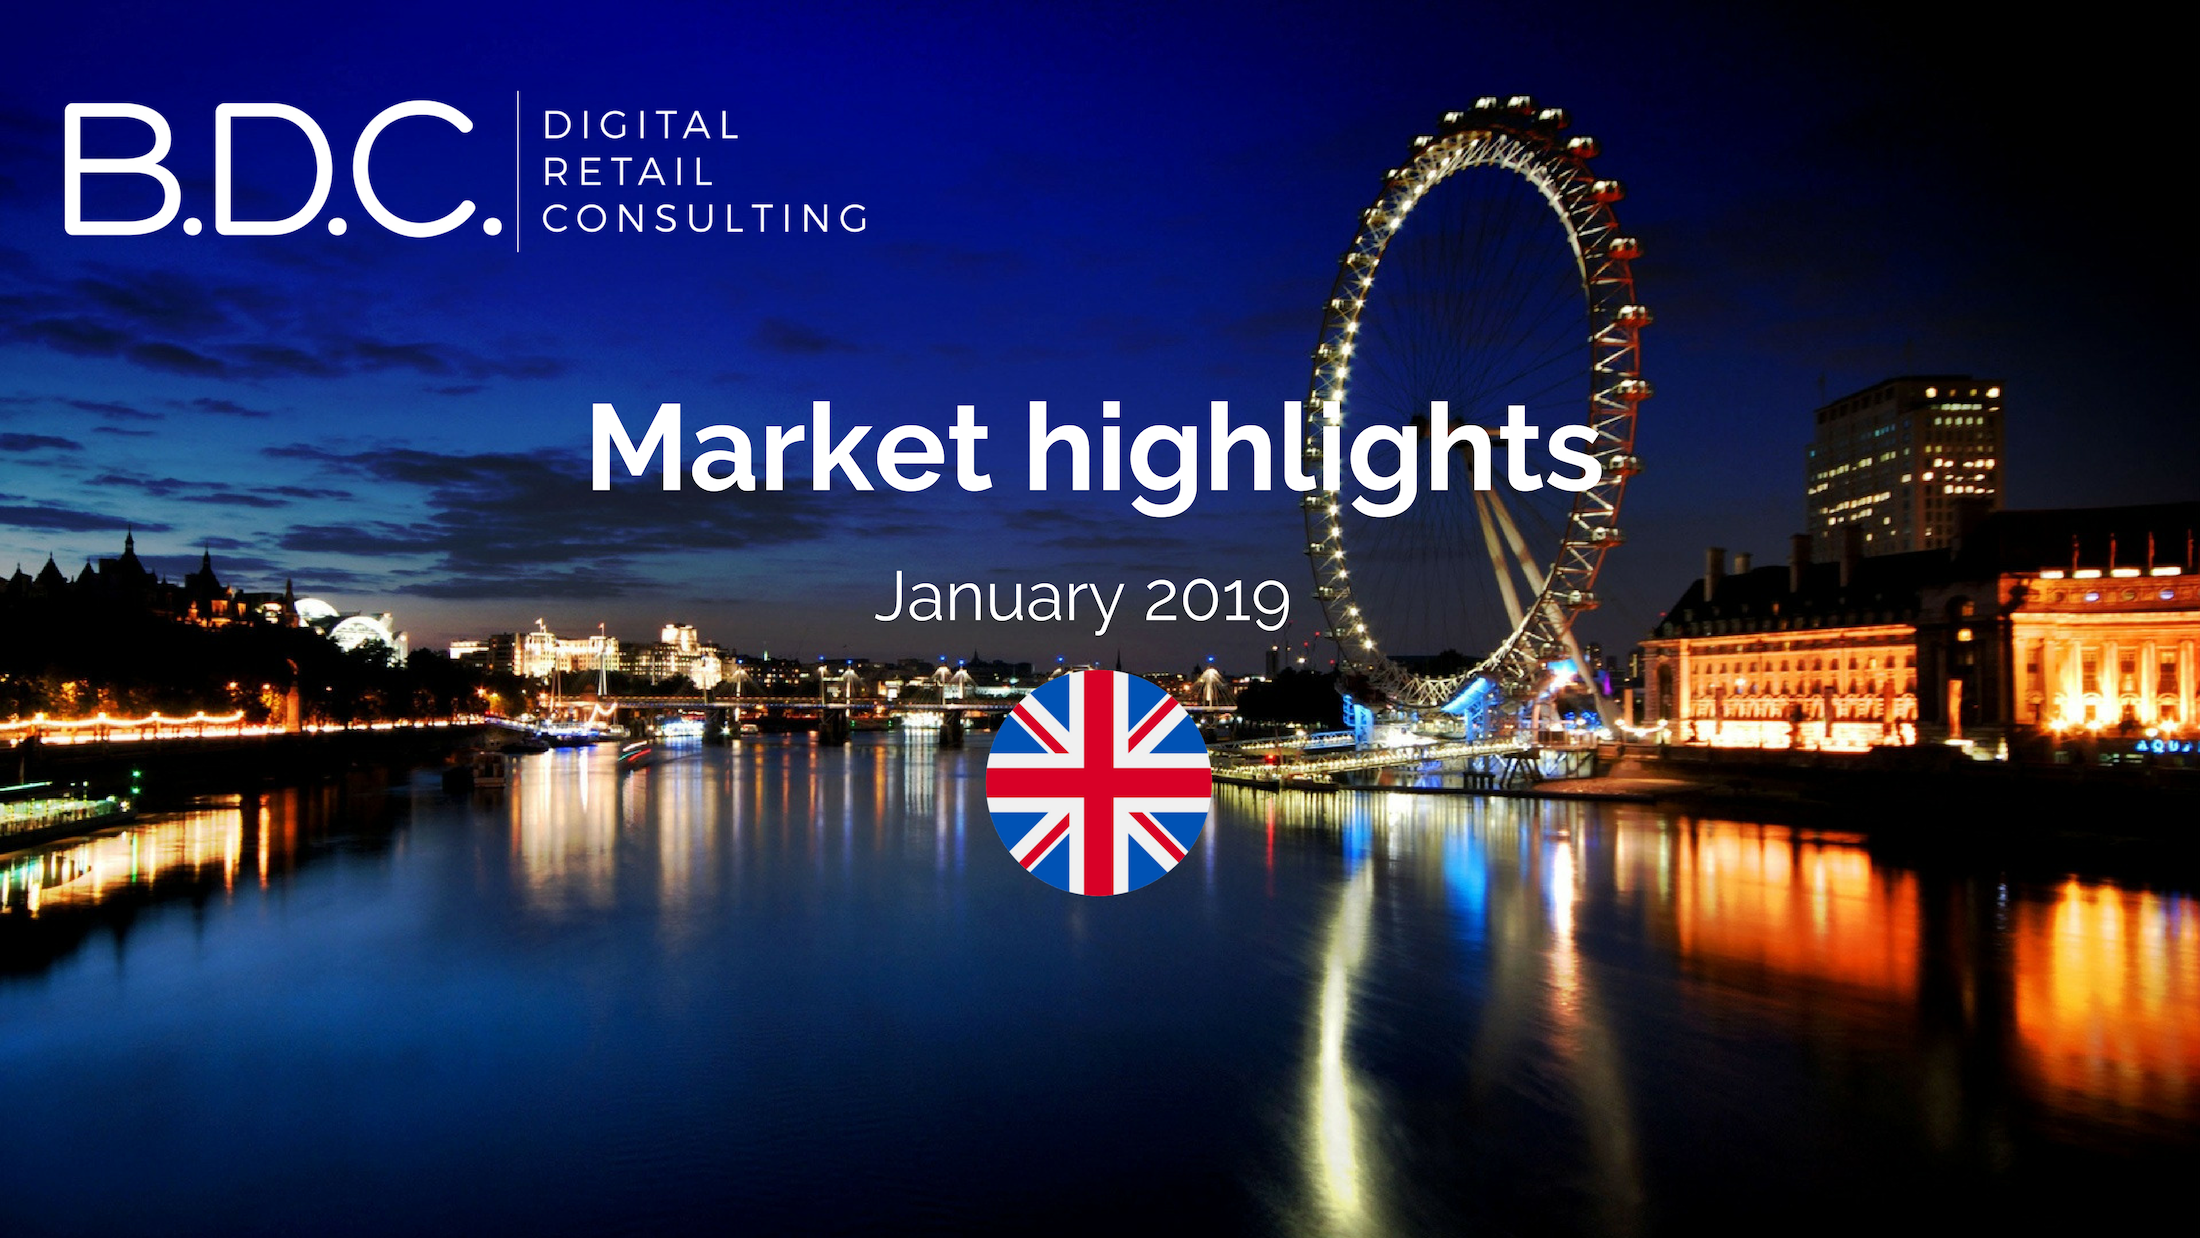 Trends News 20 - UK MARKET HIGHLIGHTS – JANUARY 2019